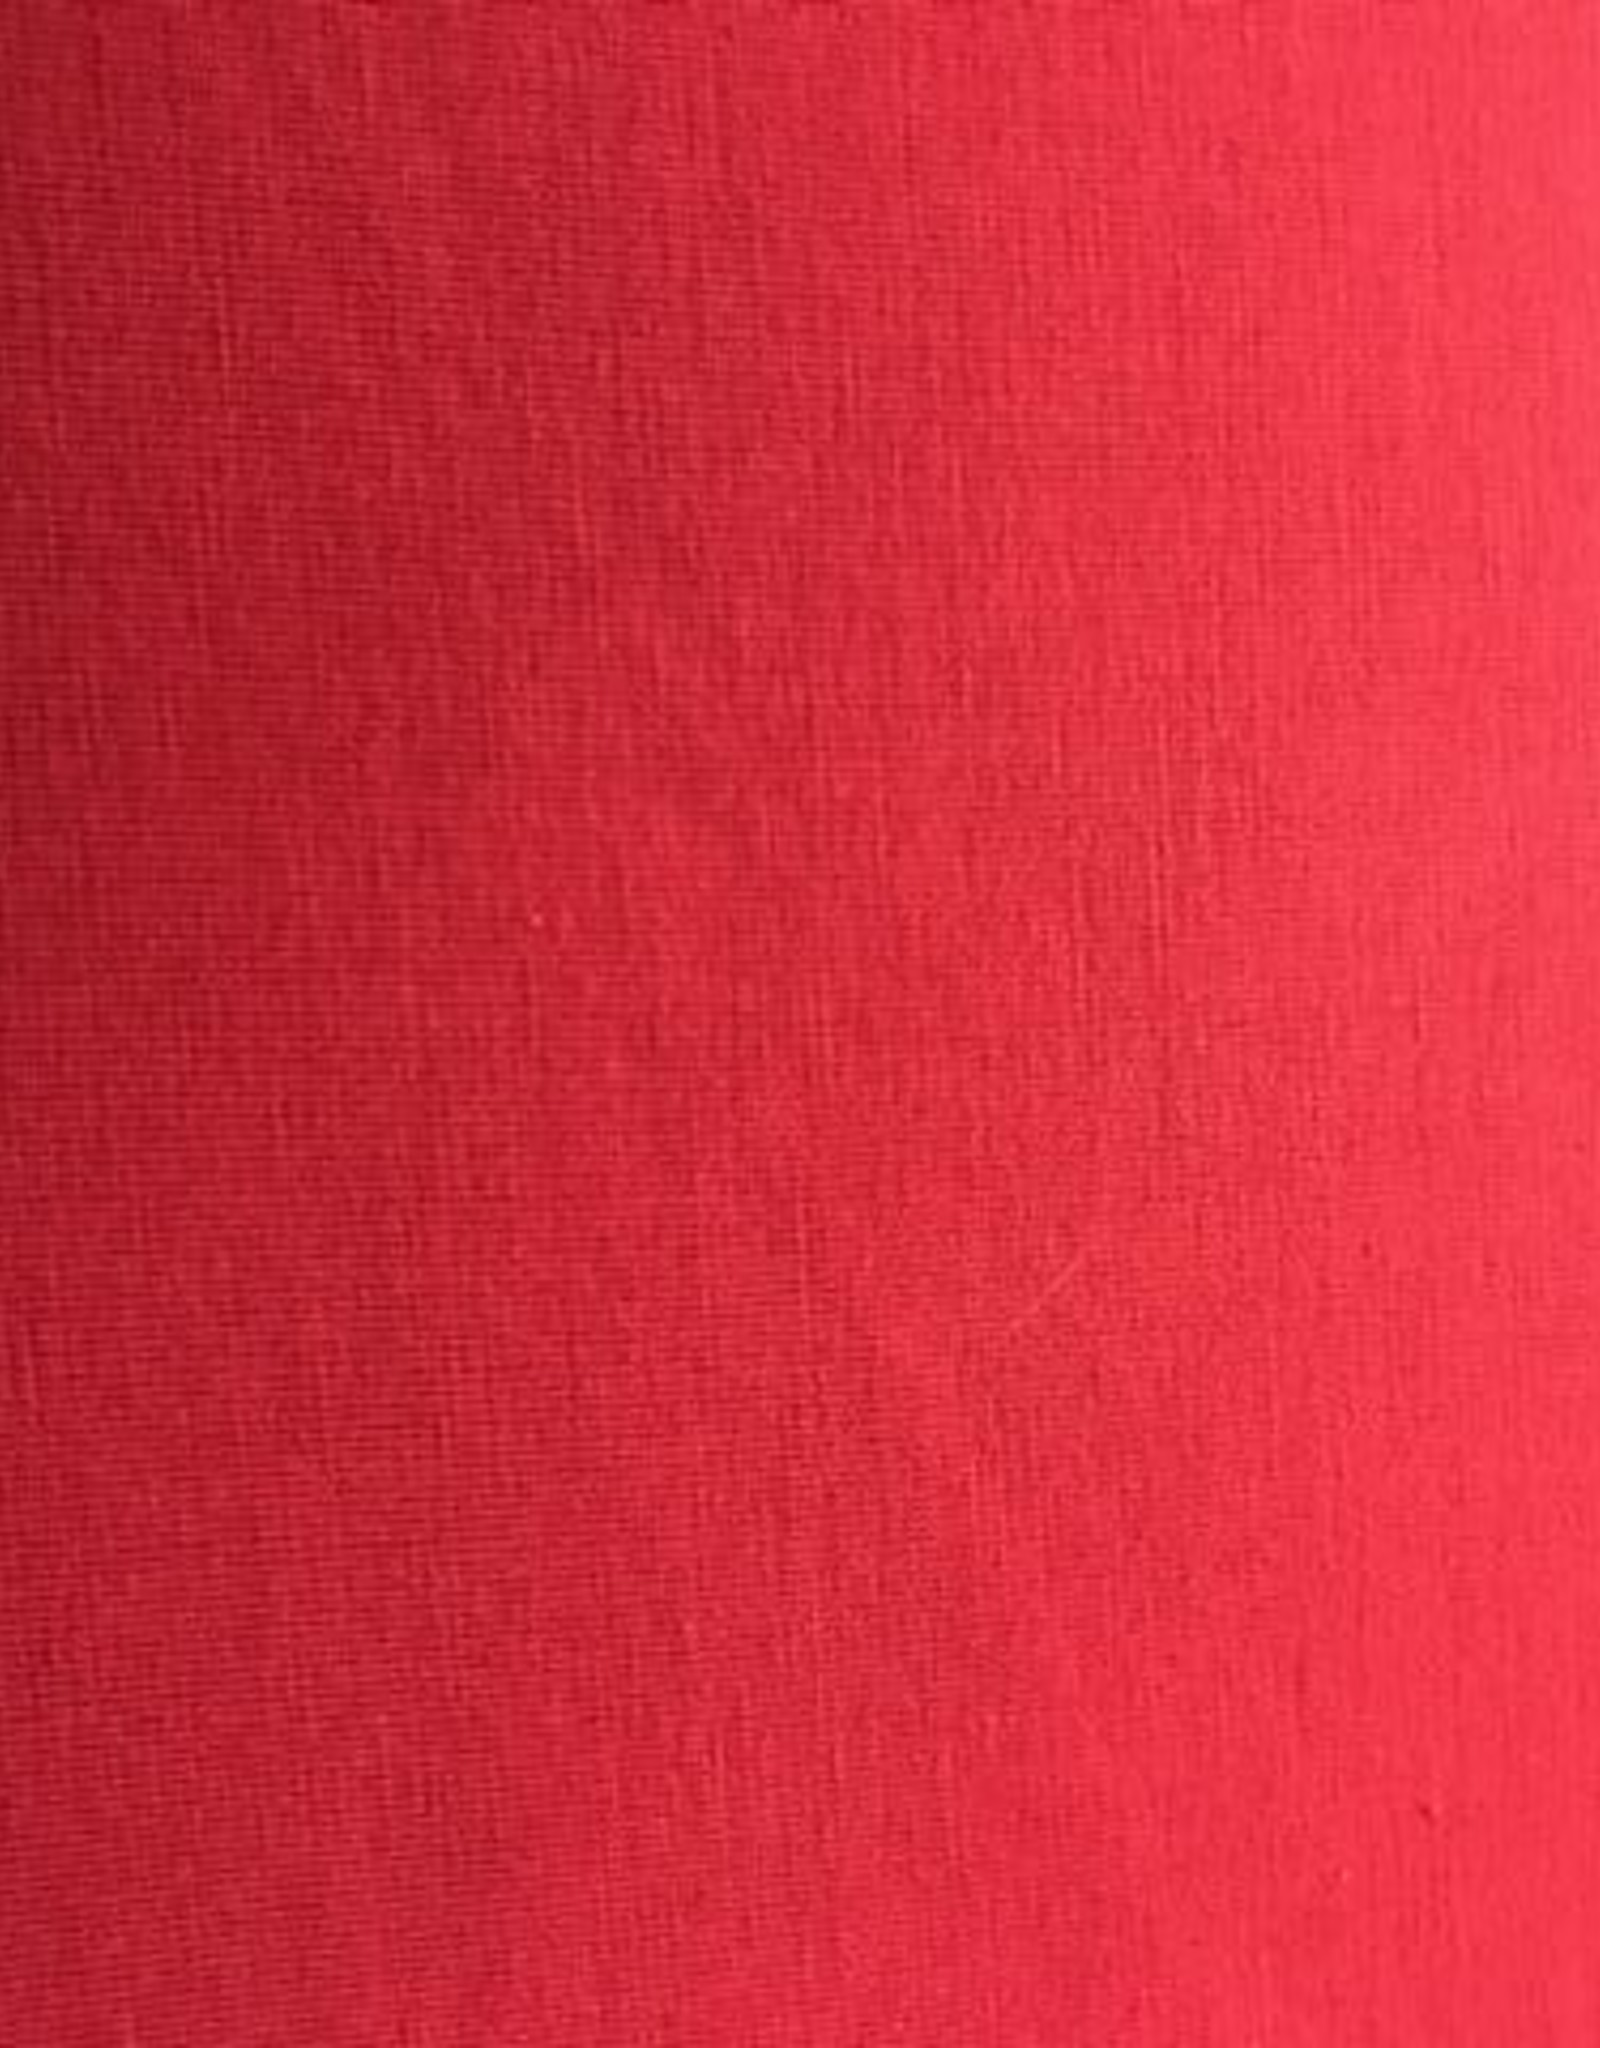 Bamboe tricot rood